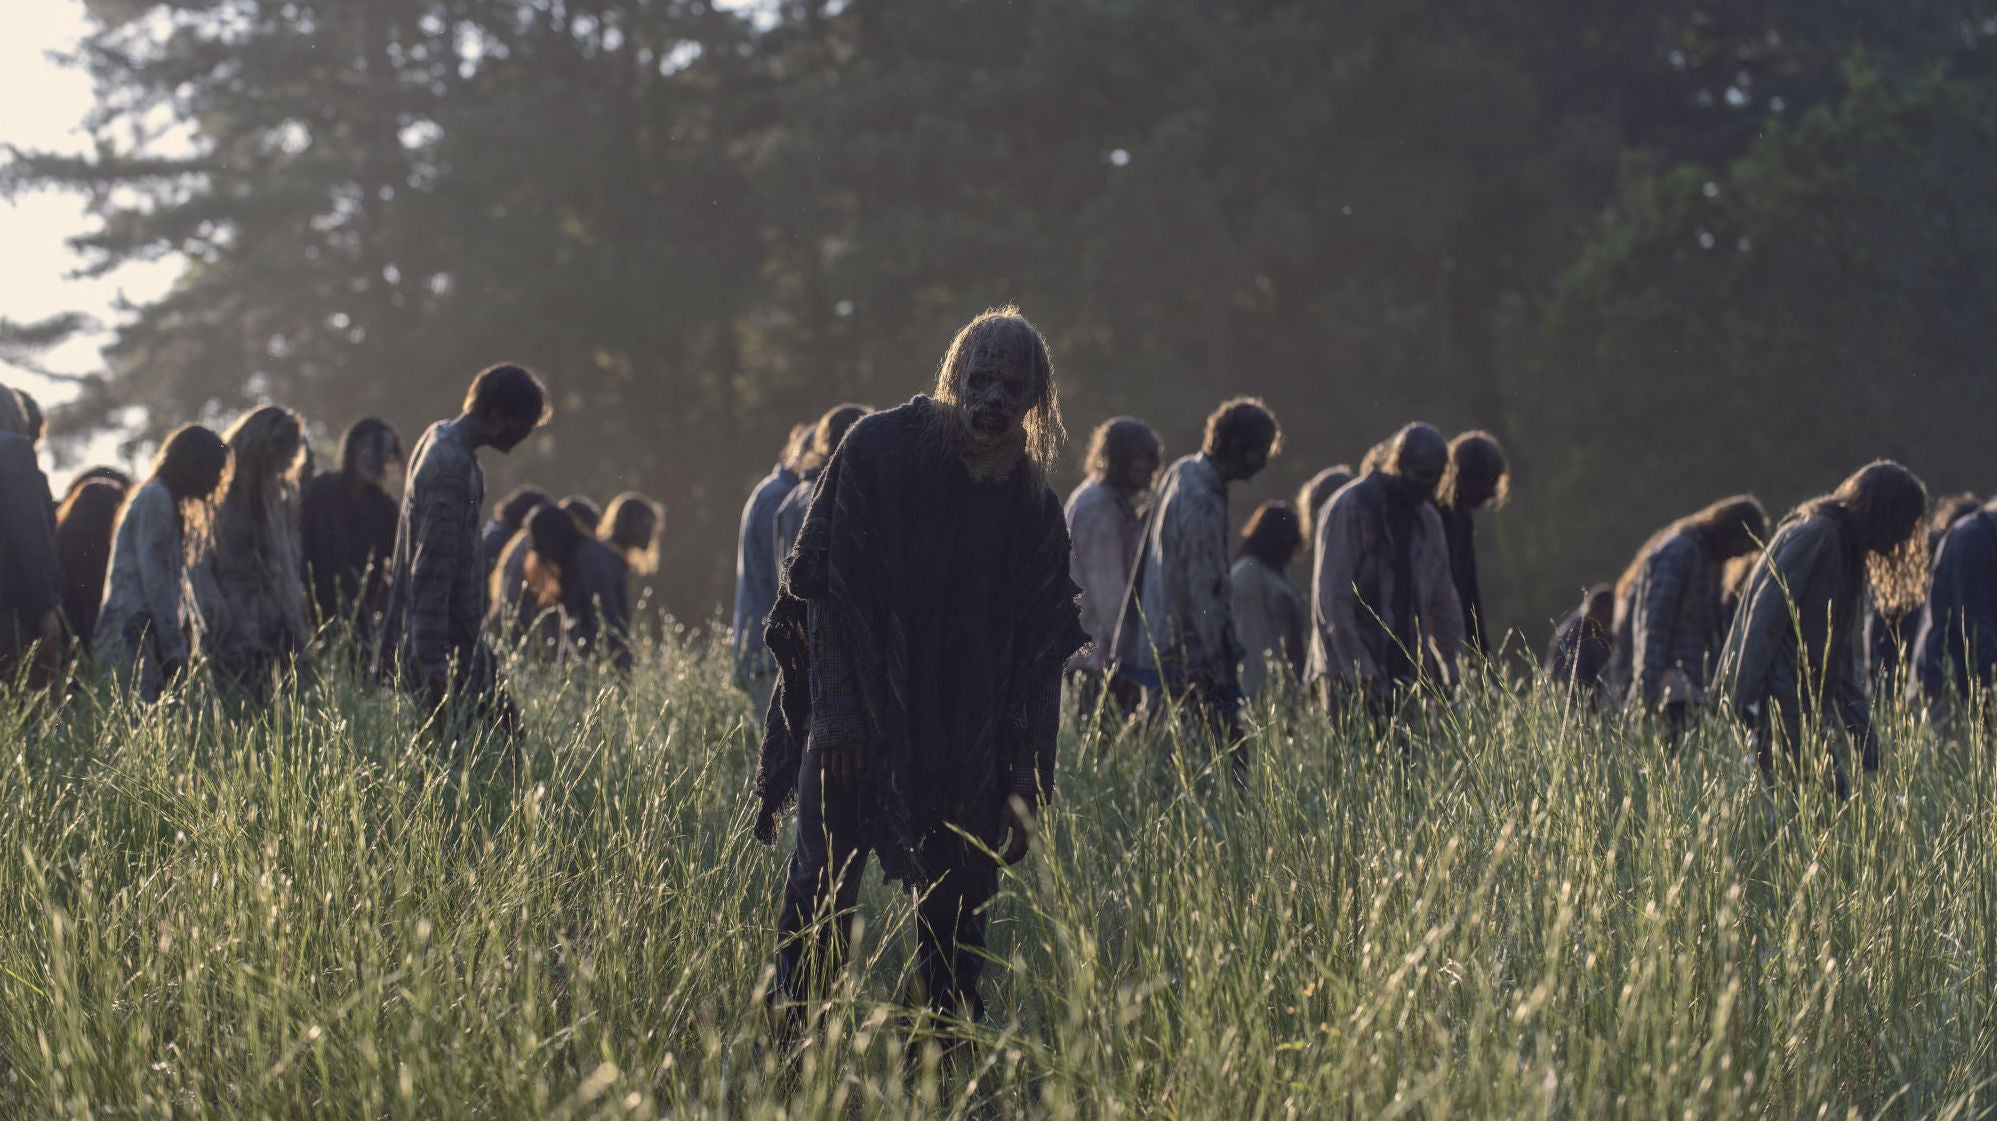 The Next Walking Dead Spin-Off Will Star 2 Women As First Generation Zombie Slayers